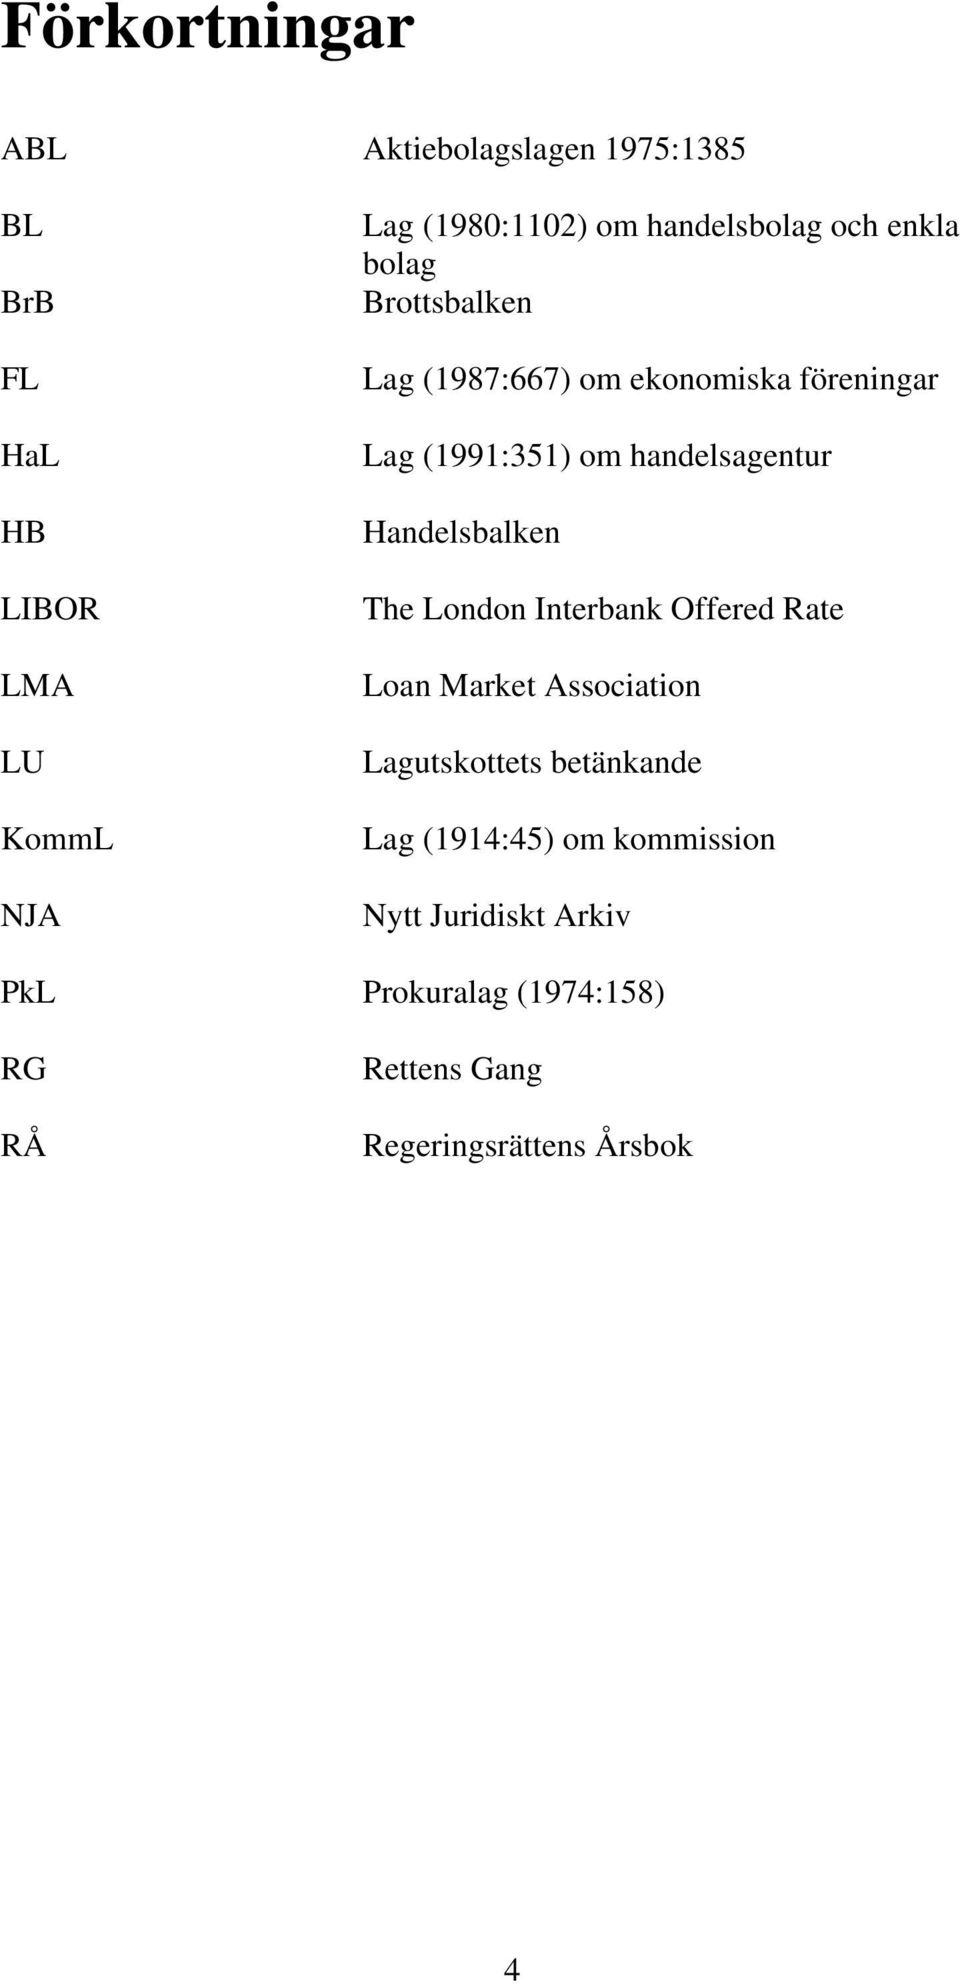 handelsagentur Handelsbalken The London Interbank Offered Rate Loan Market Association Lagutskottets